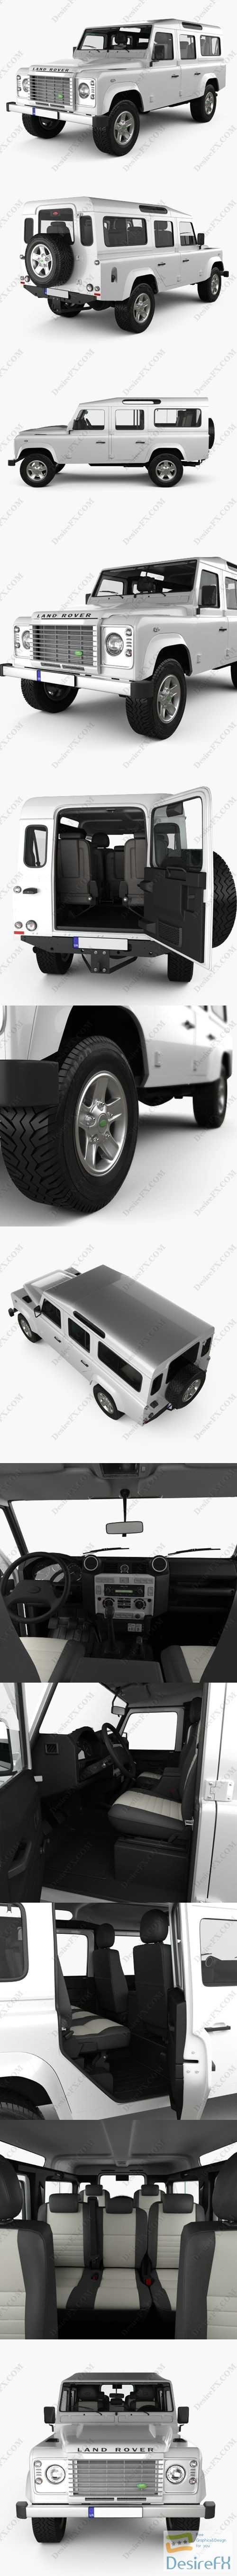 3d-models - Land Rover Defender 110 Station Wagon with HQ interior 2011 3D Model